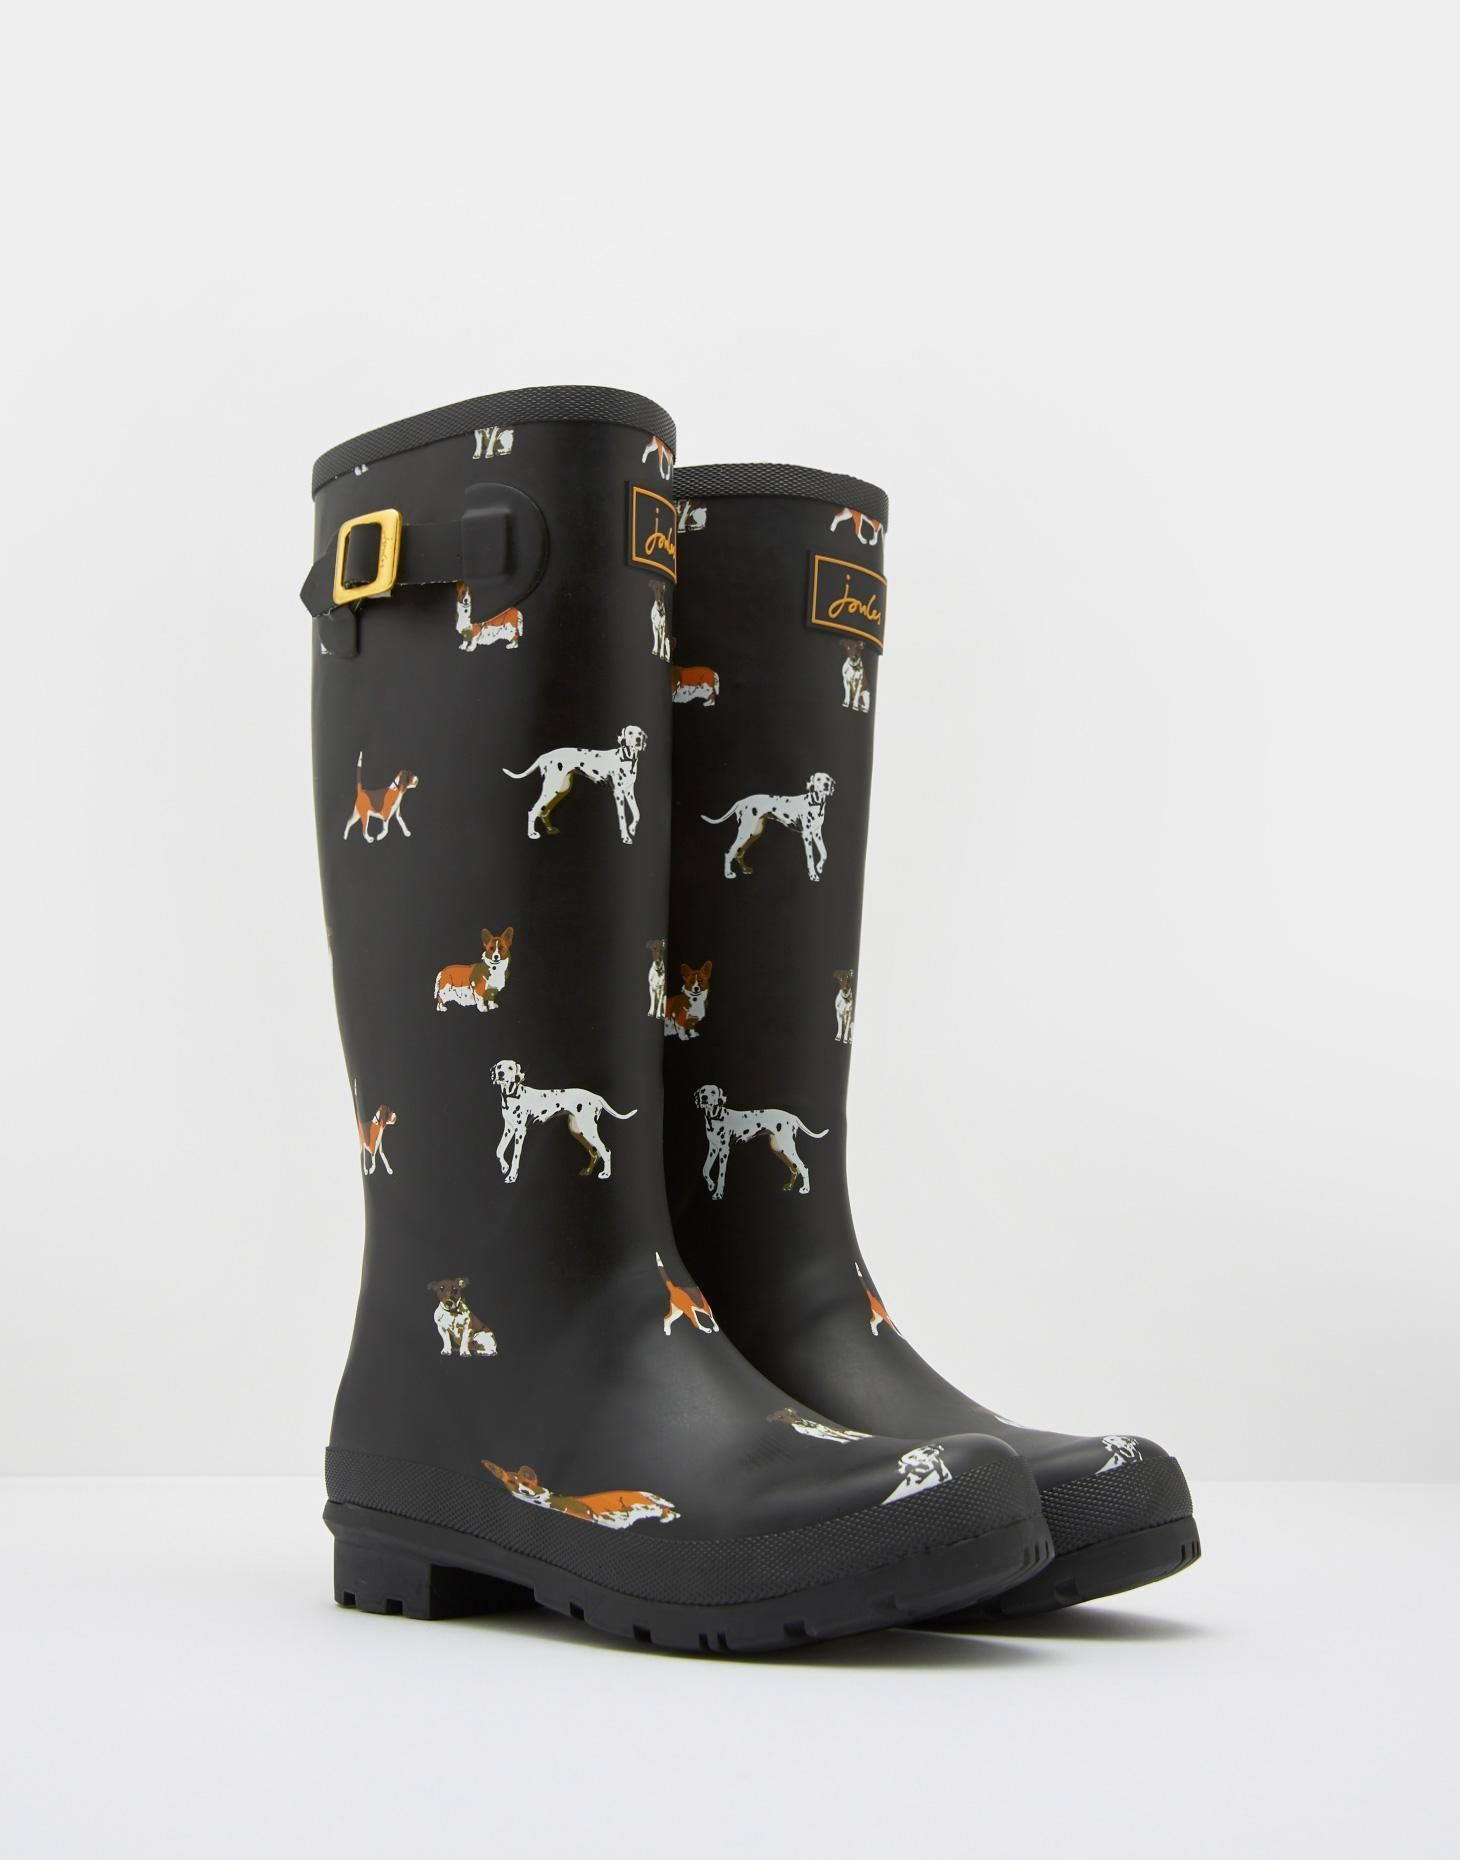 46052d0e771 Preppy Forever in doggie rainboots-Printed Black Dog Rain Boots